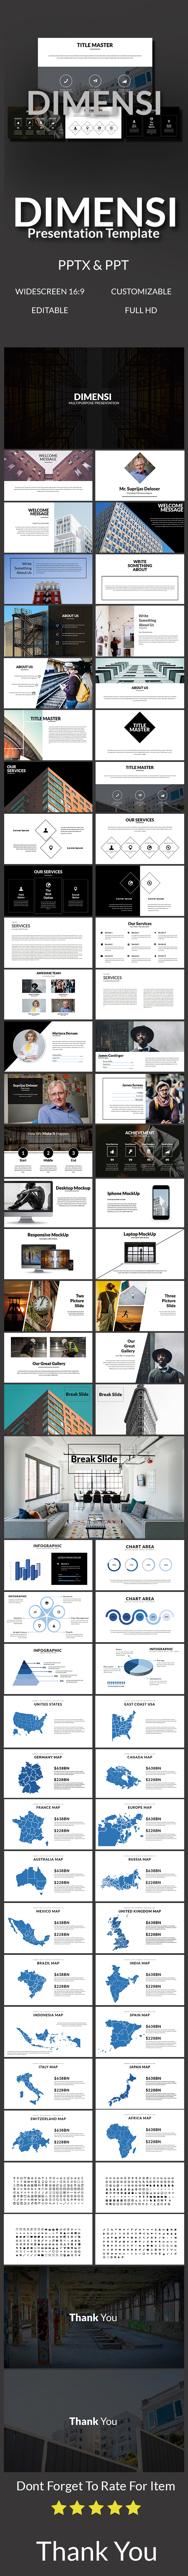 Dimensi Multipurpose Template (PowerPoint Templates)